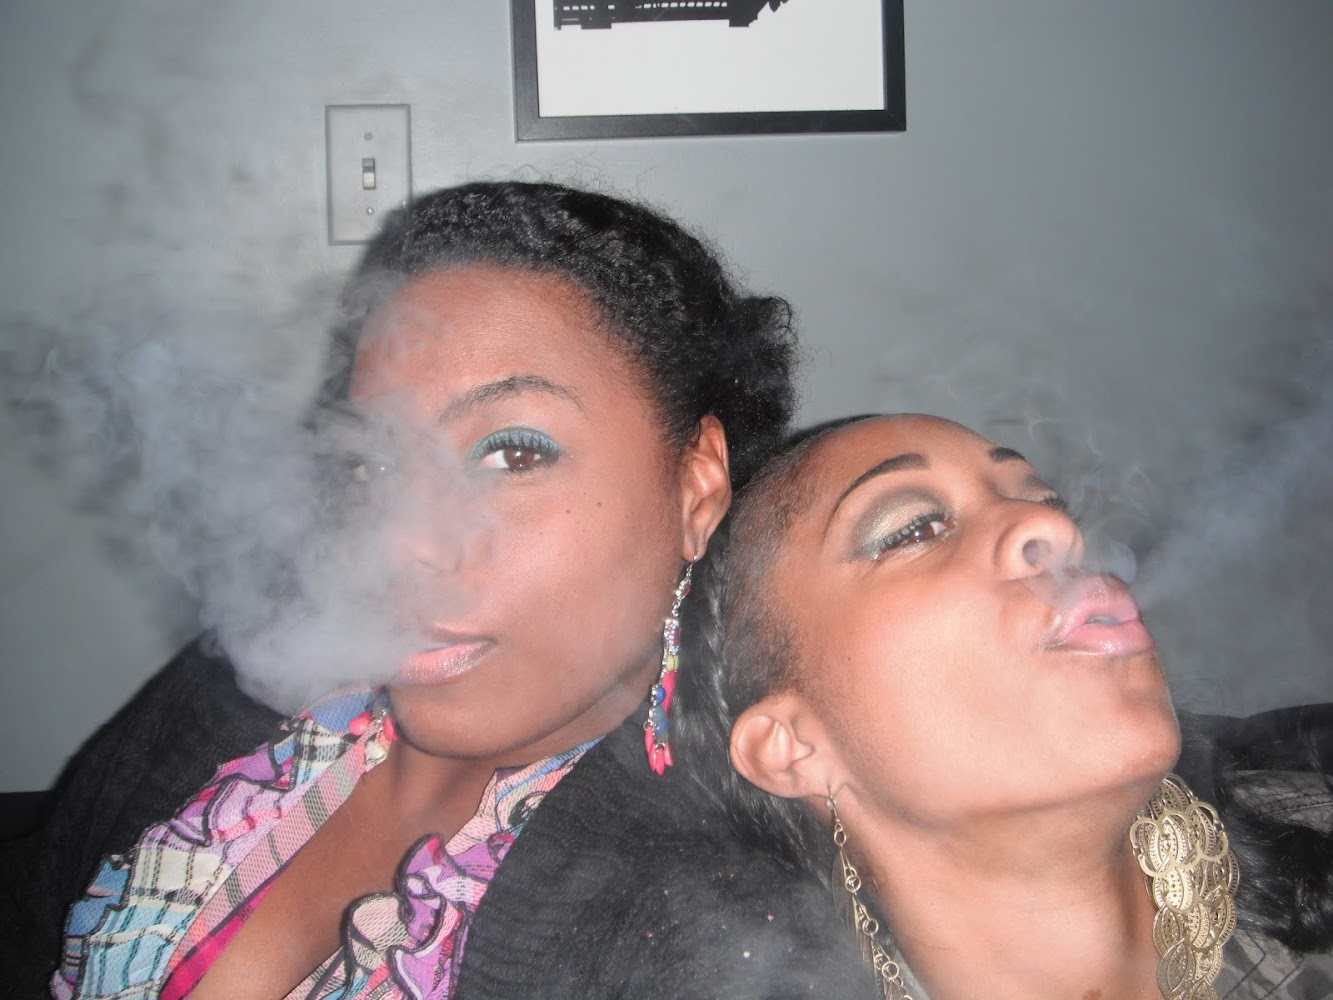 Weekend Recap: Hookah & Belly Dancing w/ the Bestie